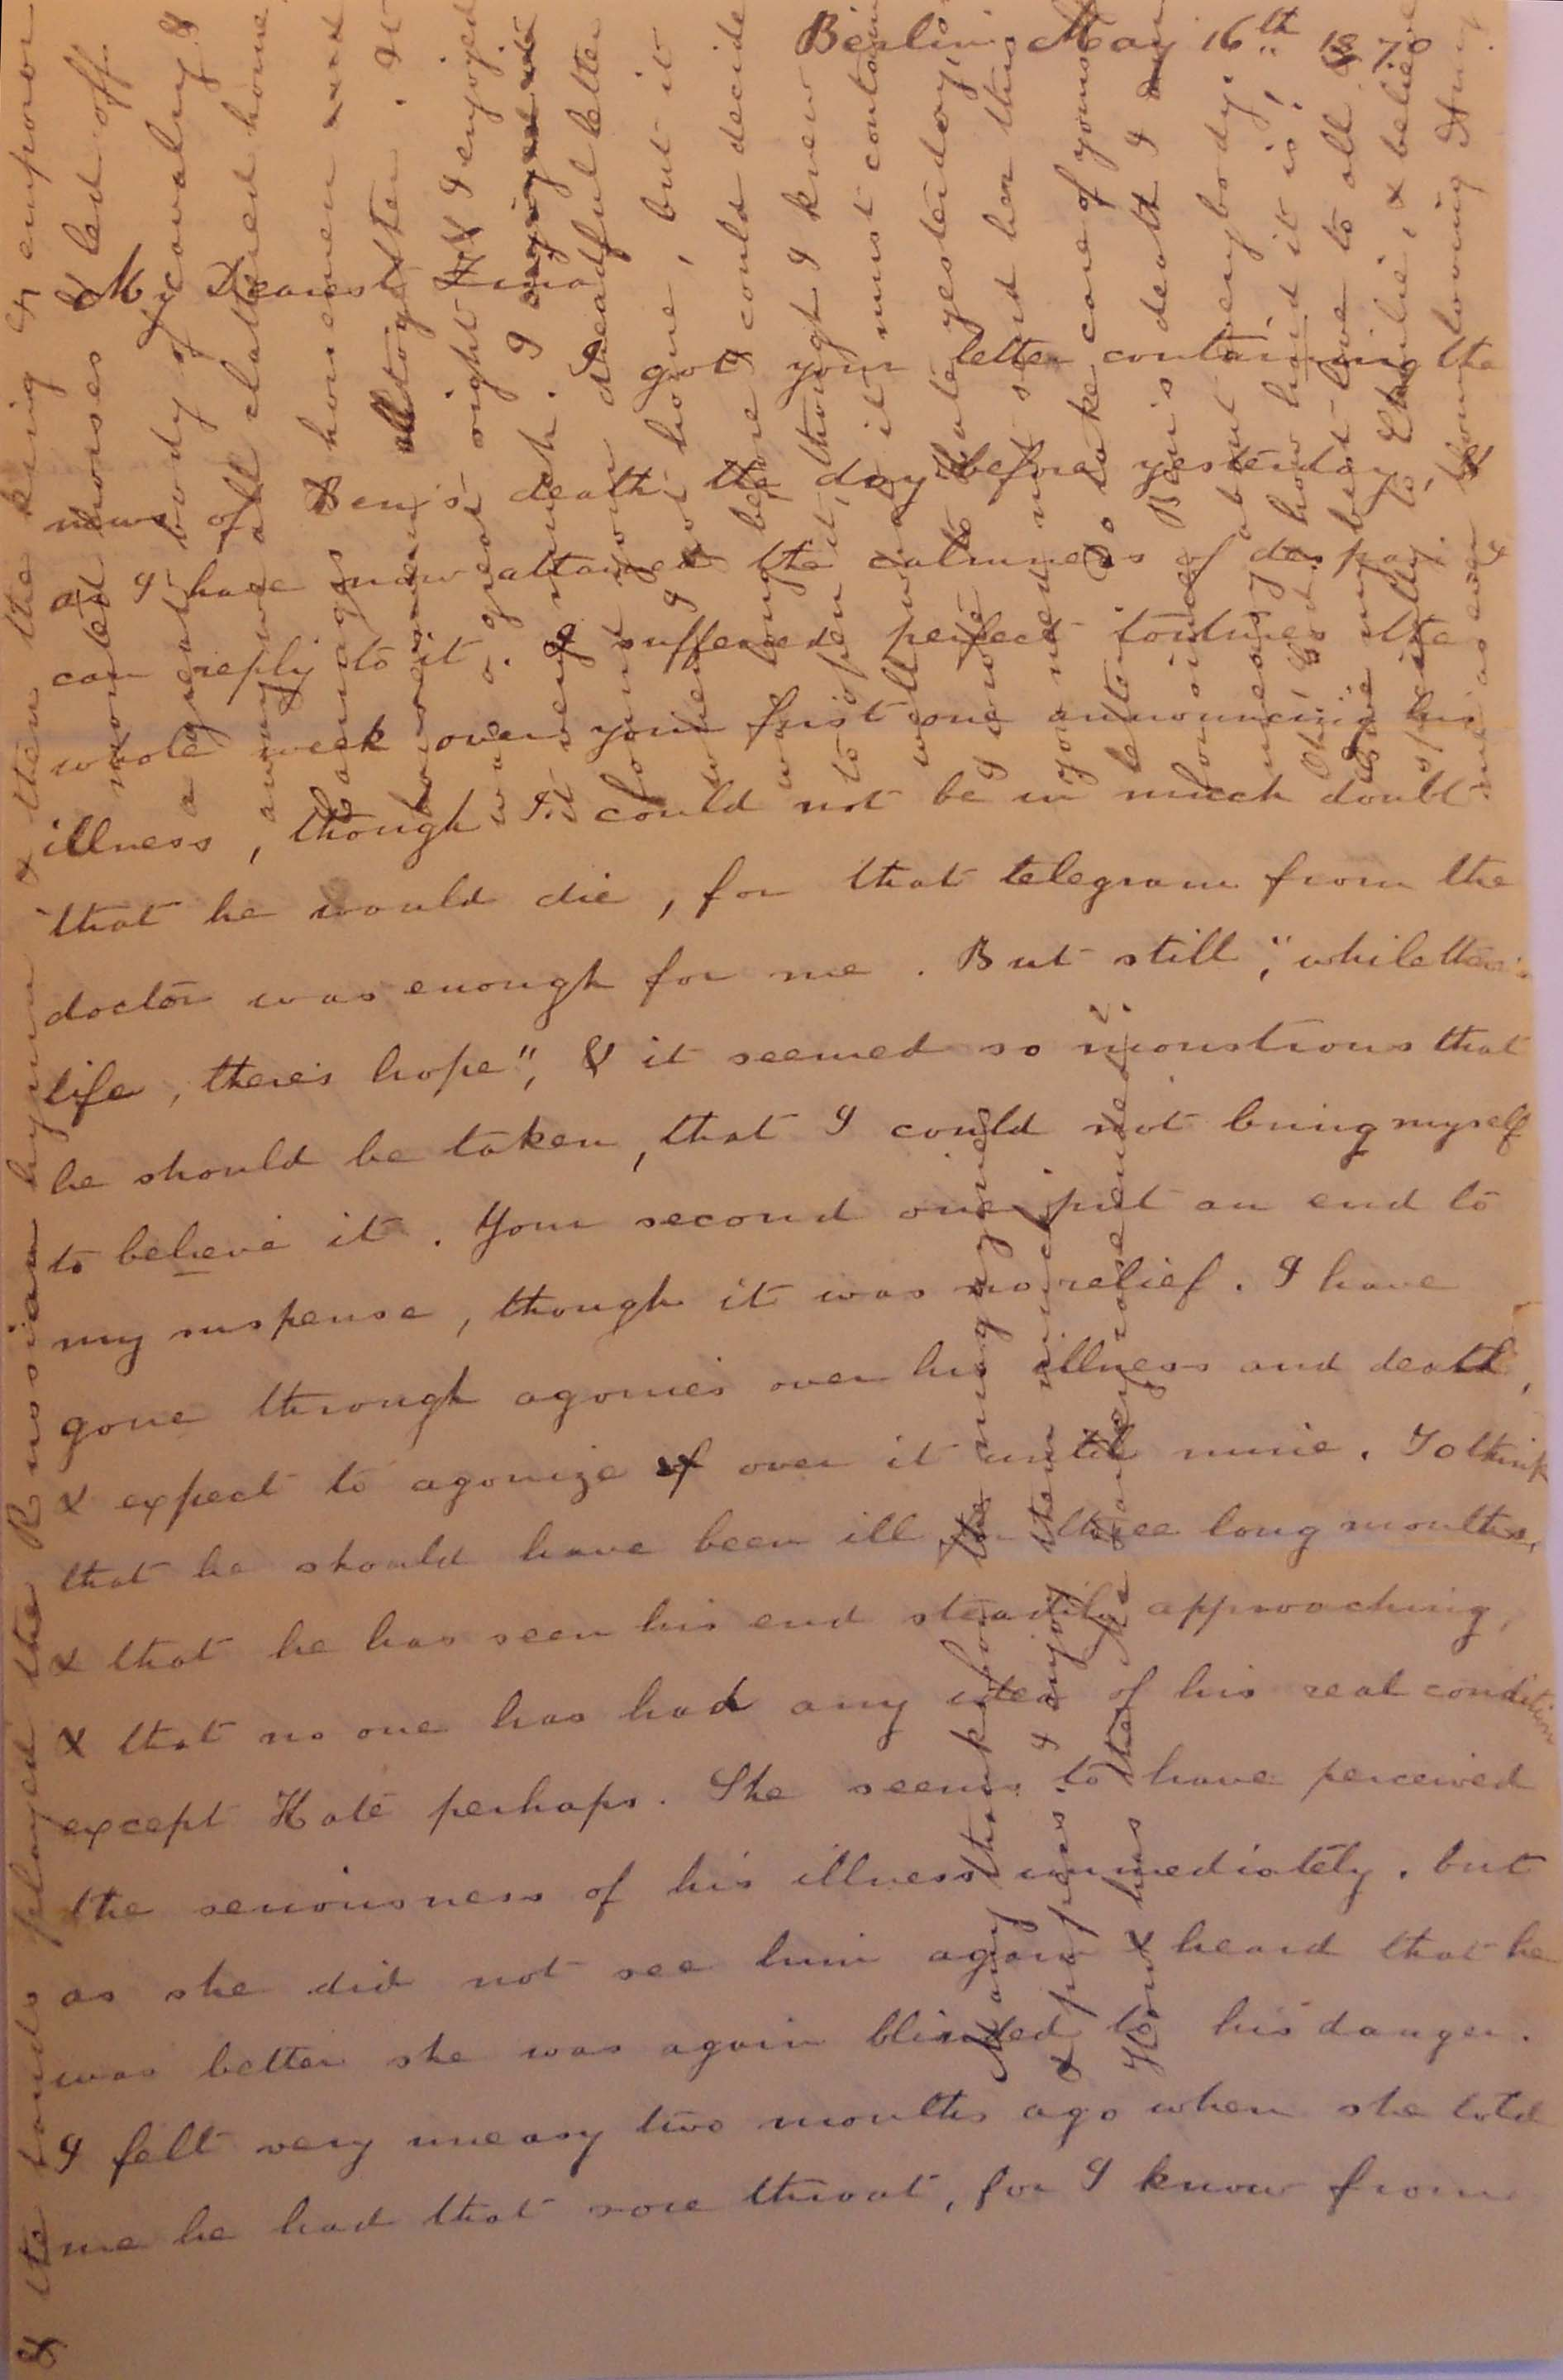 Letter from Amy Fay to her sister Zina, 16 05 70